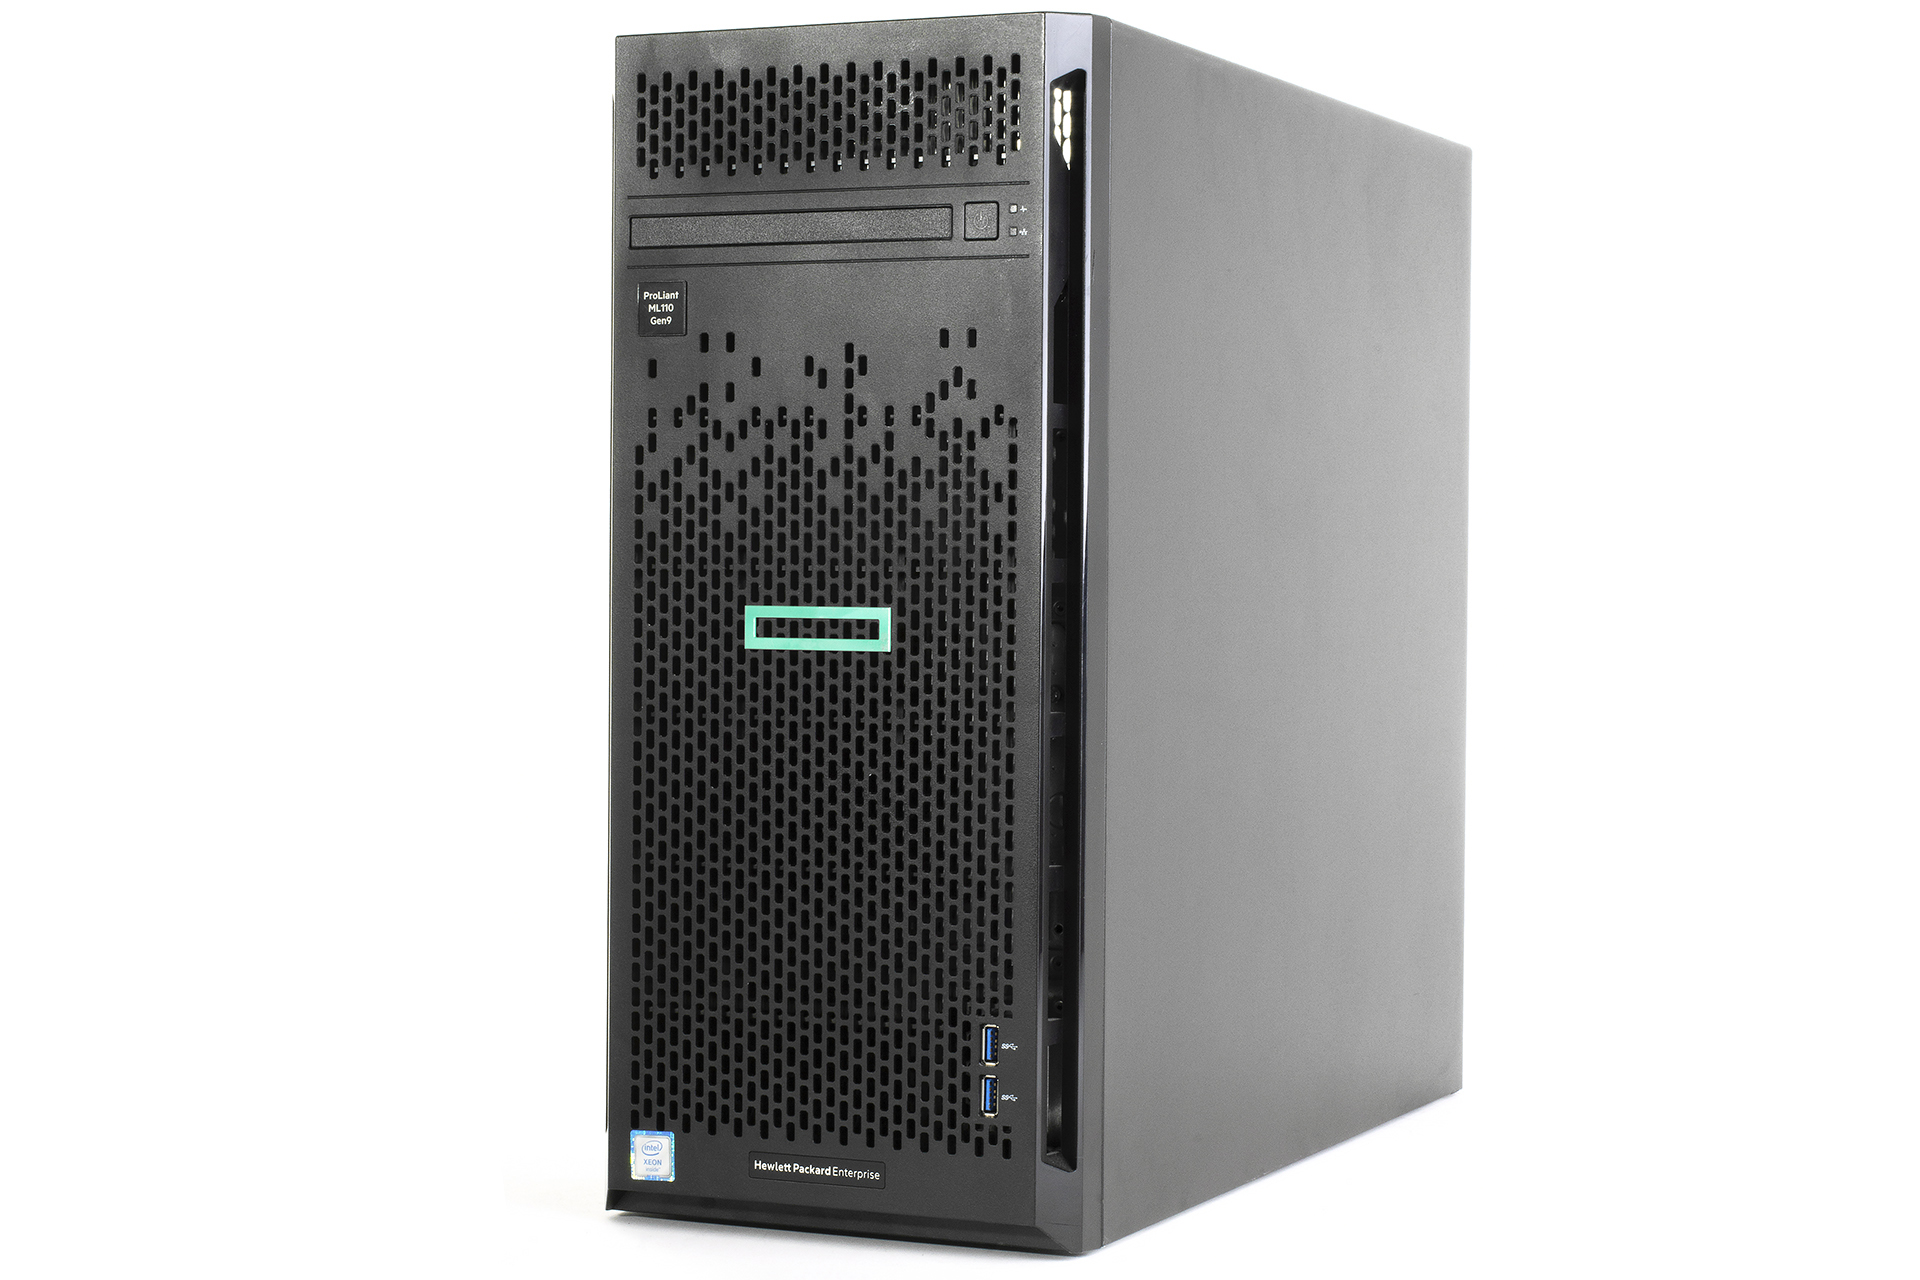 HP ProLiant ML110 Gen9 600 GB SAS Windows Server 2016 Essentials